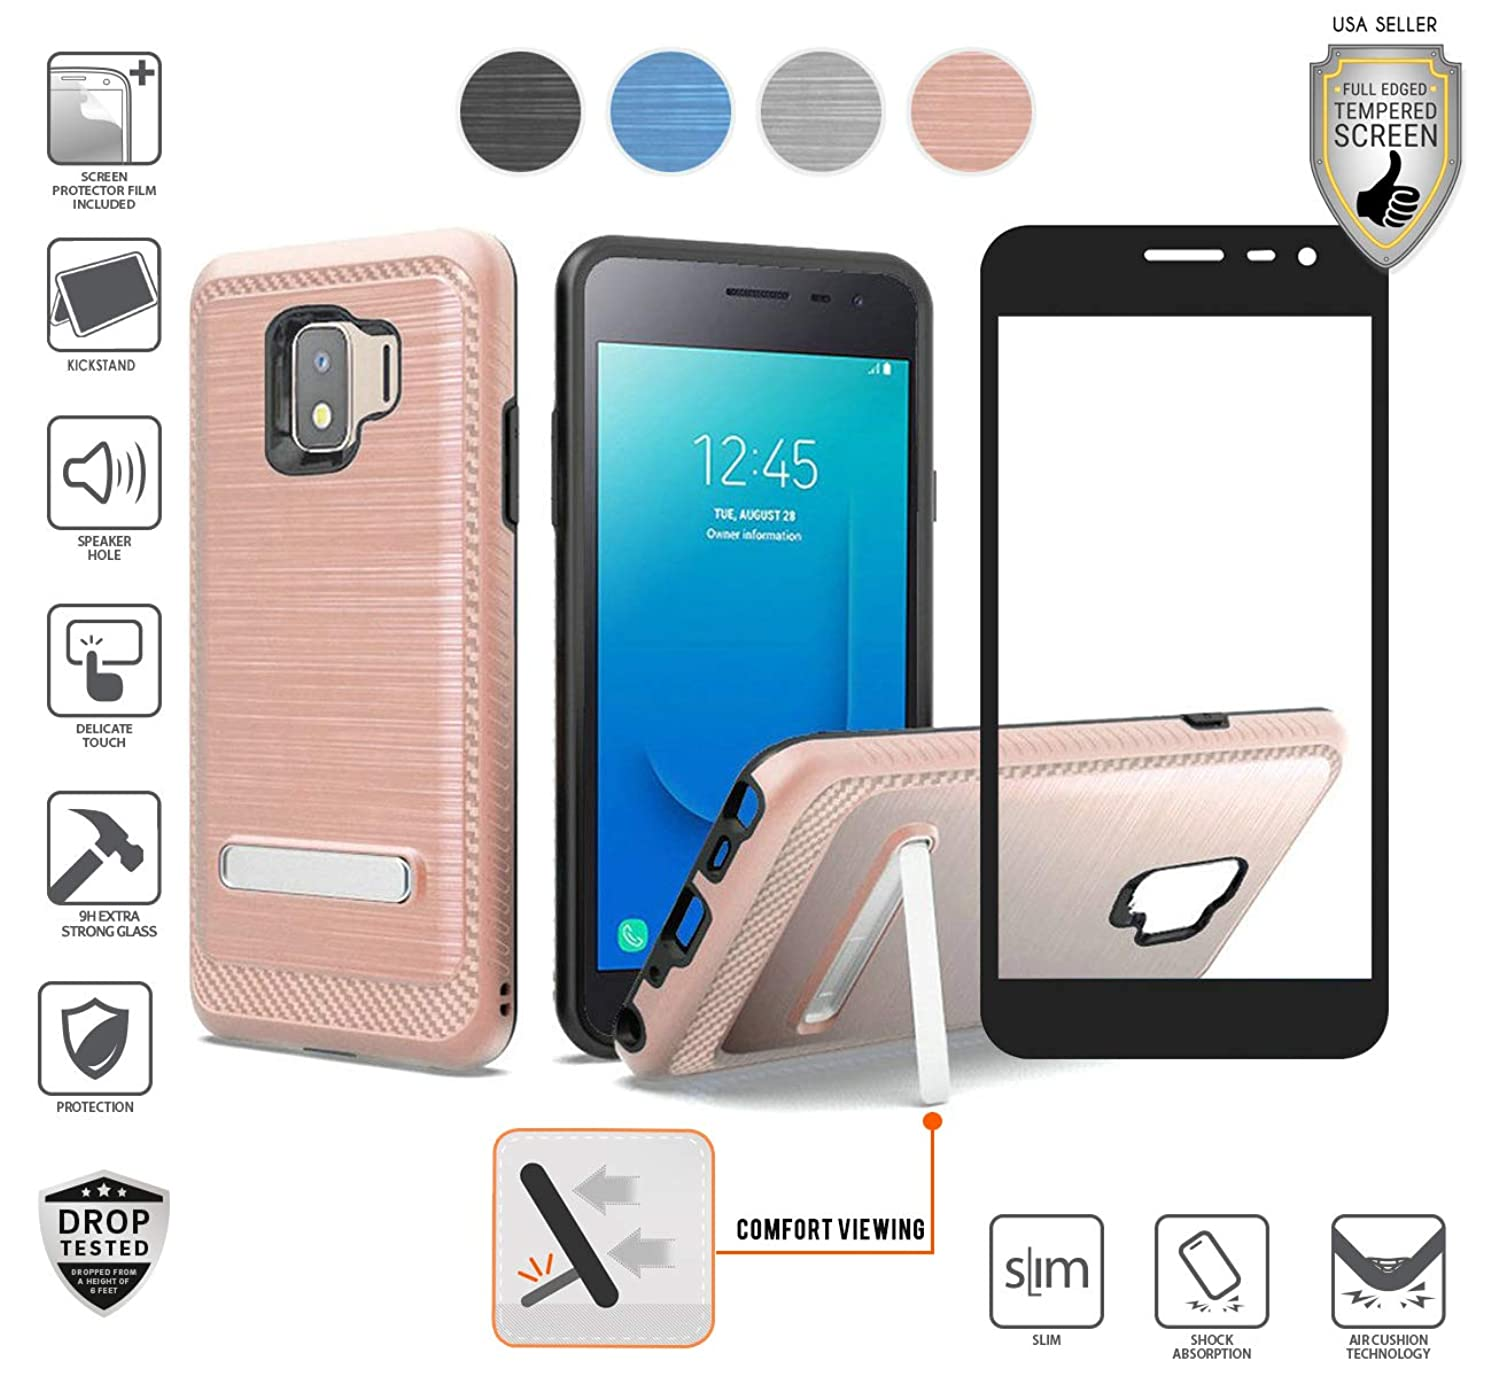 Compatible for Galaxy J2/J2 Pure/J2 Core/J2 Dash Case with Stand, with Full Edged Tempered Glass Screen Protector, Premium Tough Armor Hybird [Shockproof] Carbon Brushed Design Case (Rose Gold)